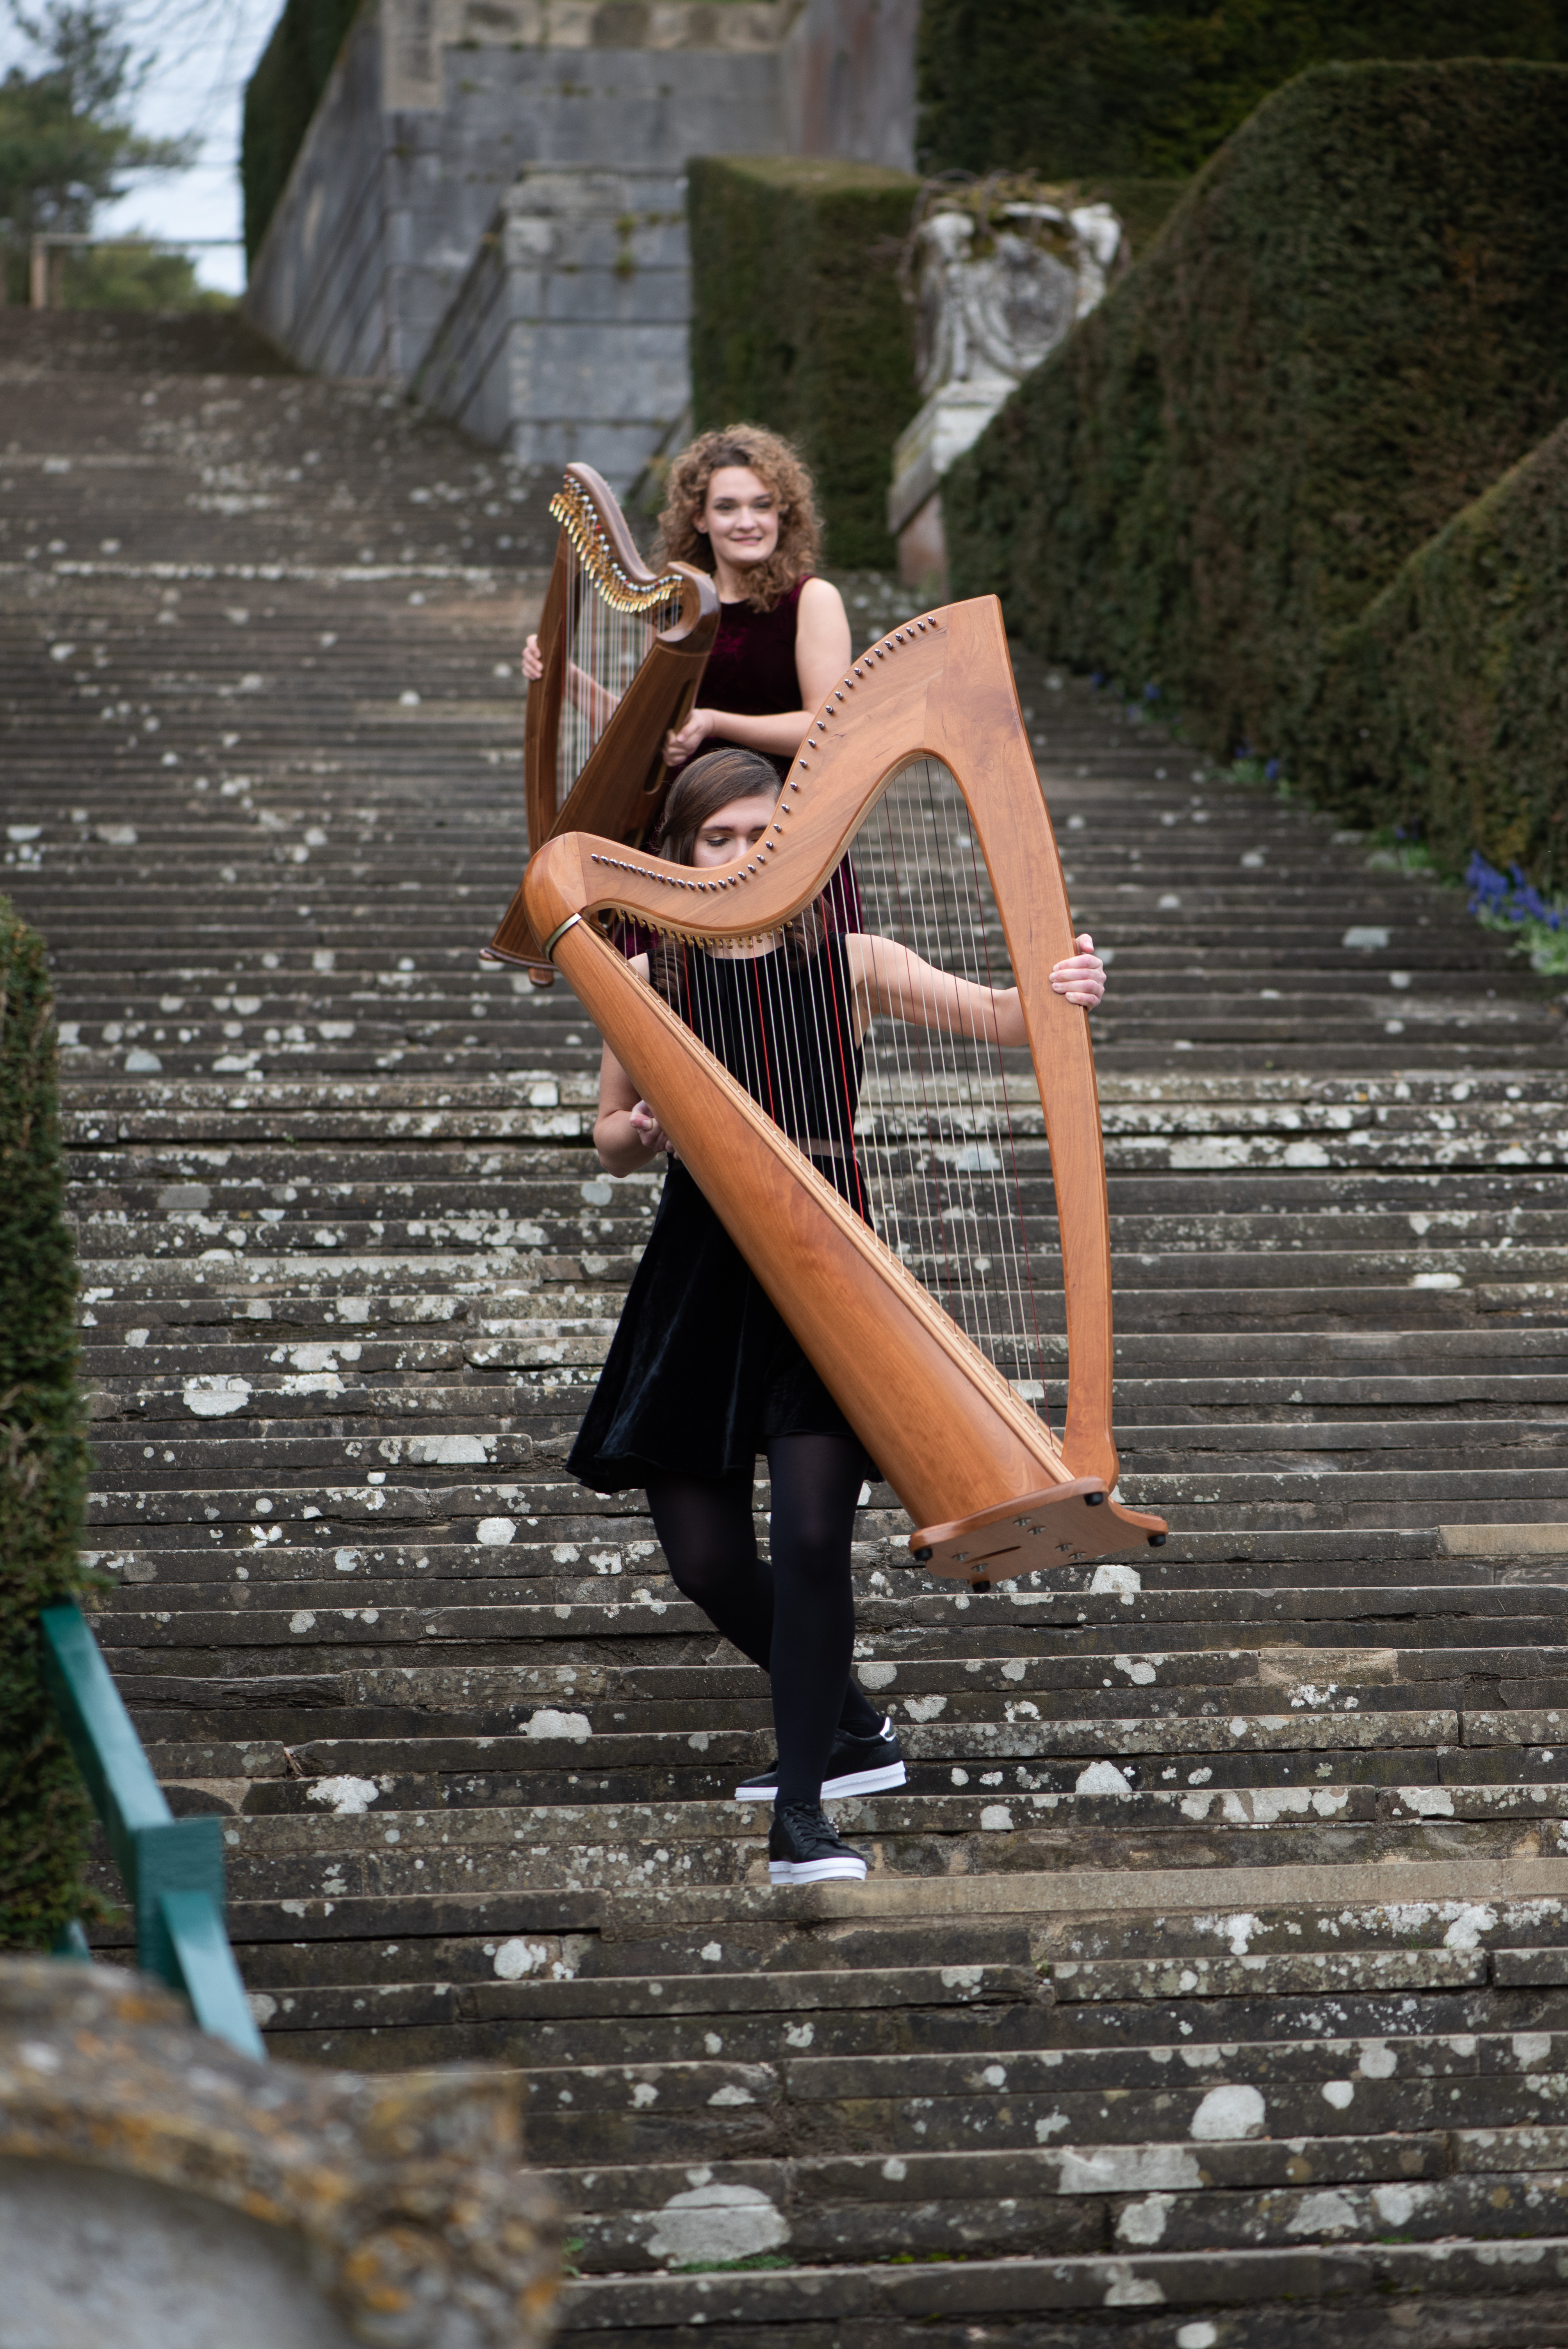 Adel, harpist carrying harp down staircase, Karina behind Adel with small harp